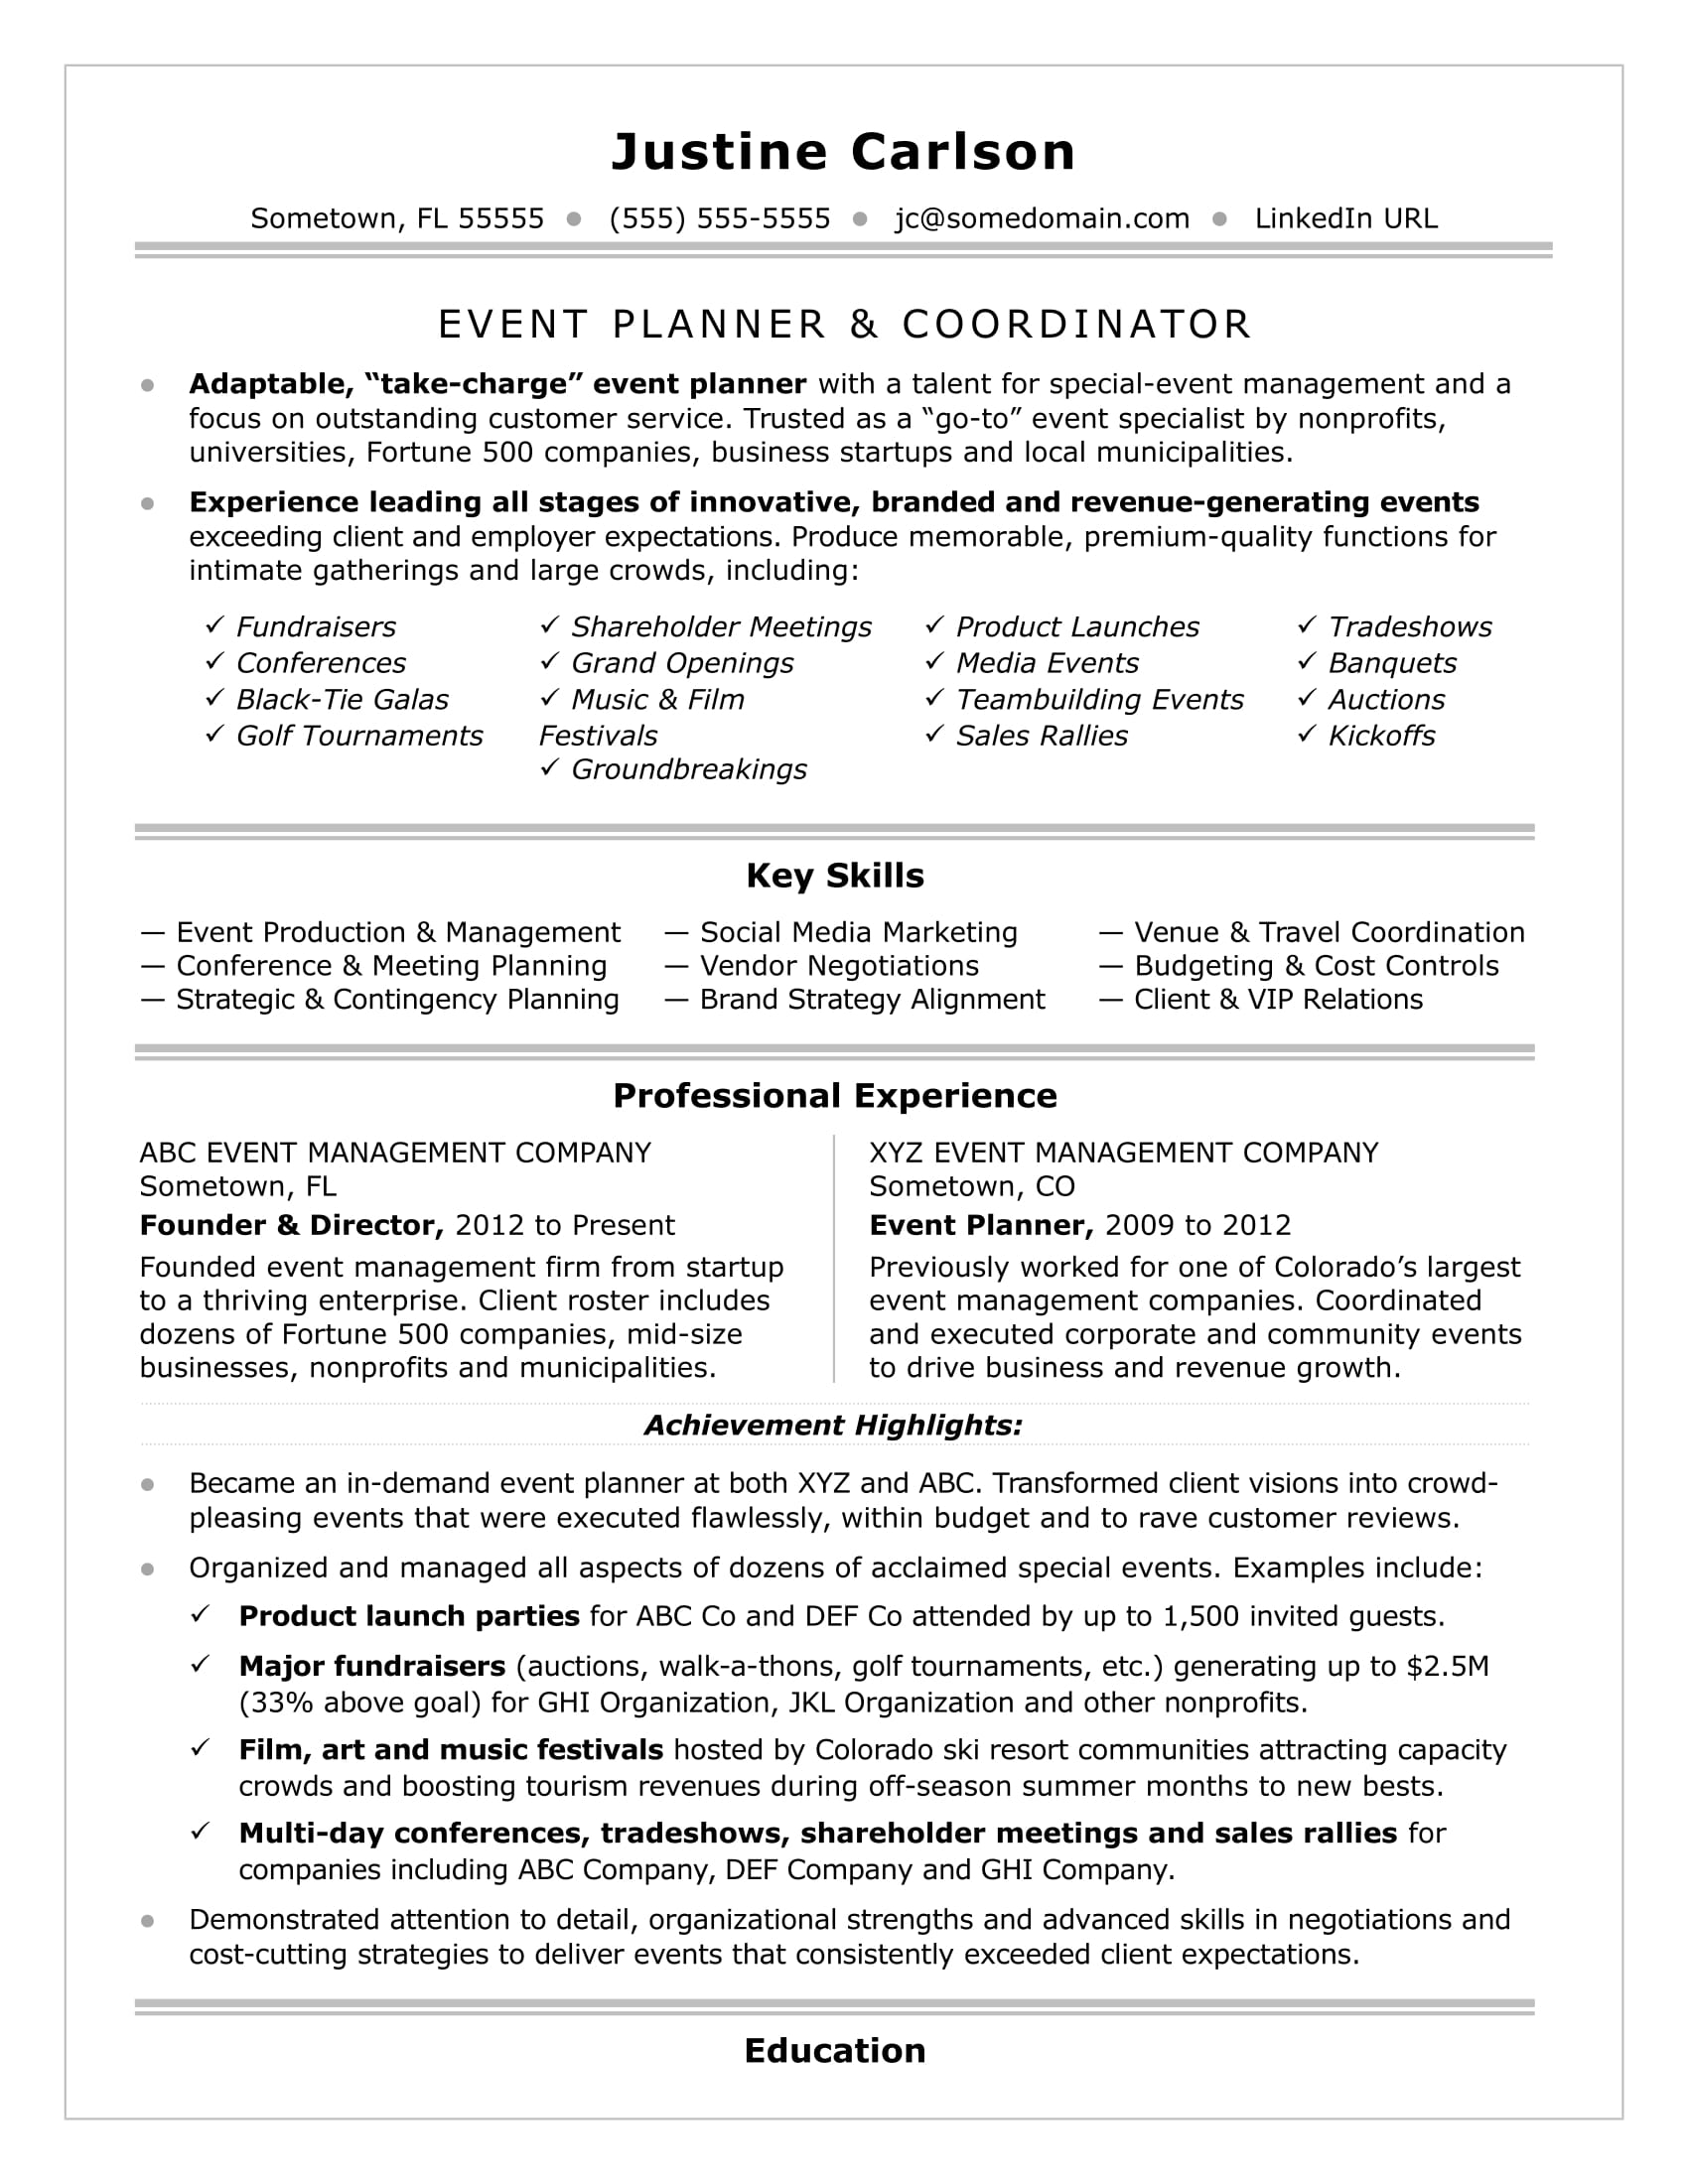 Event Coordinator Resume Sample. chef_resume. select template a sample template of a traditional resume. us recommended professional resume template simple. medical sales resume resume_example_medical_sales. create my resume